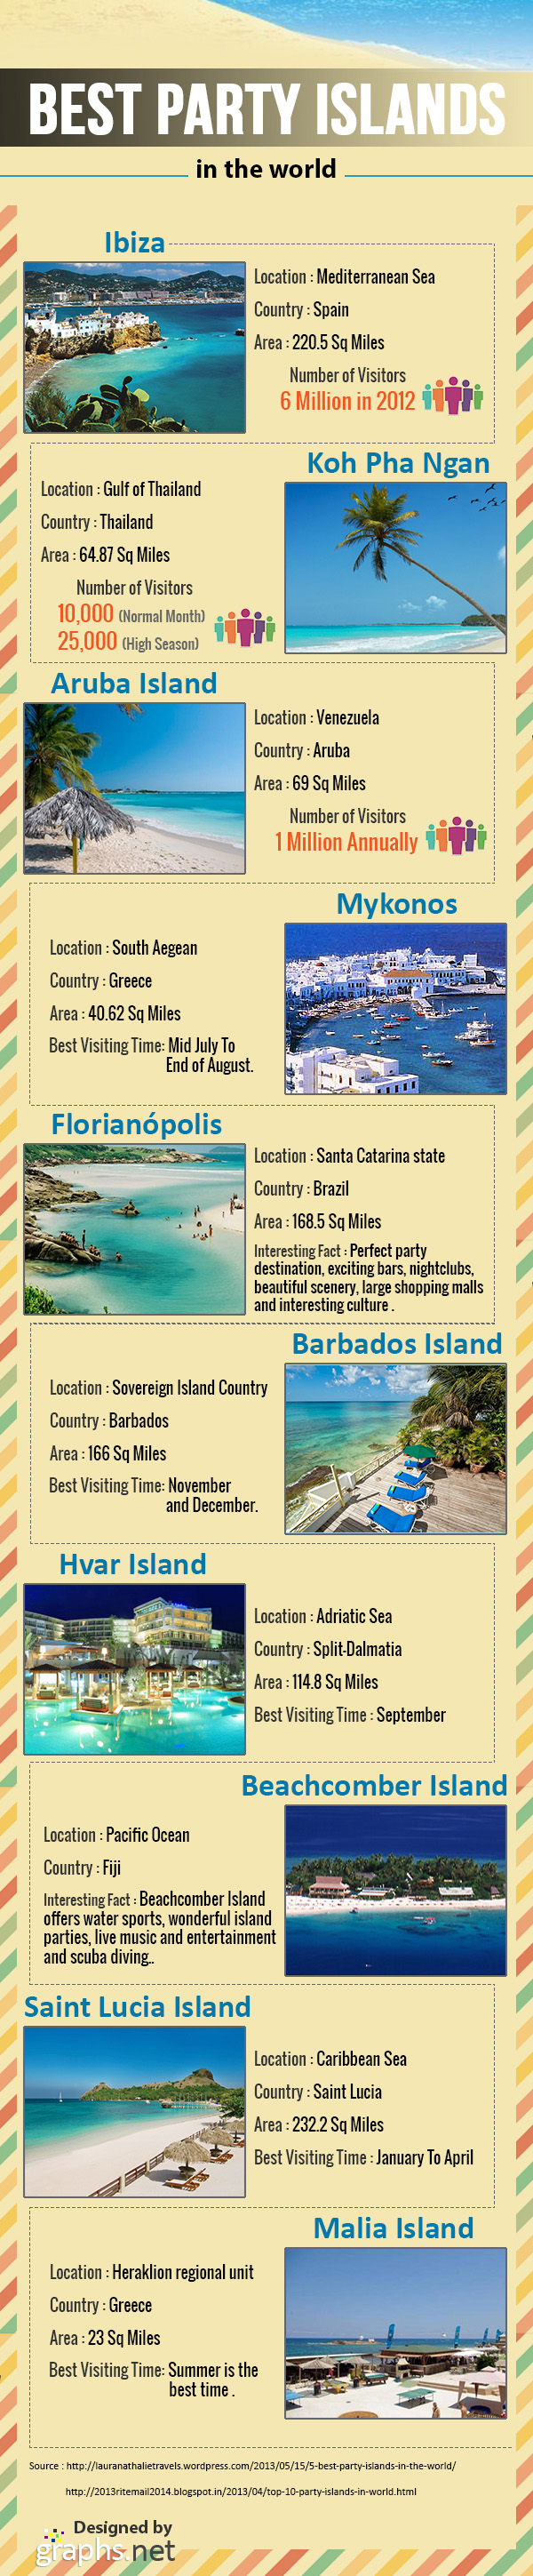 Best Party Islands in the World